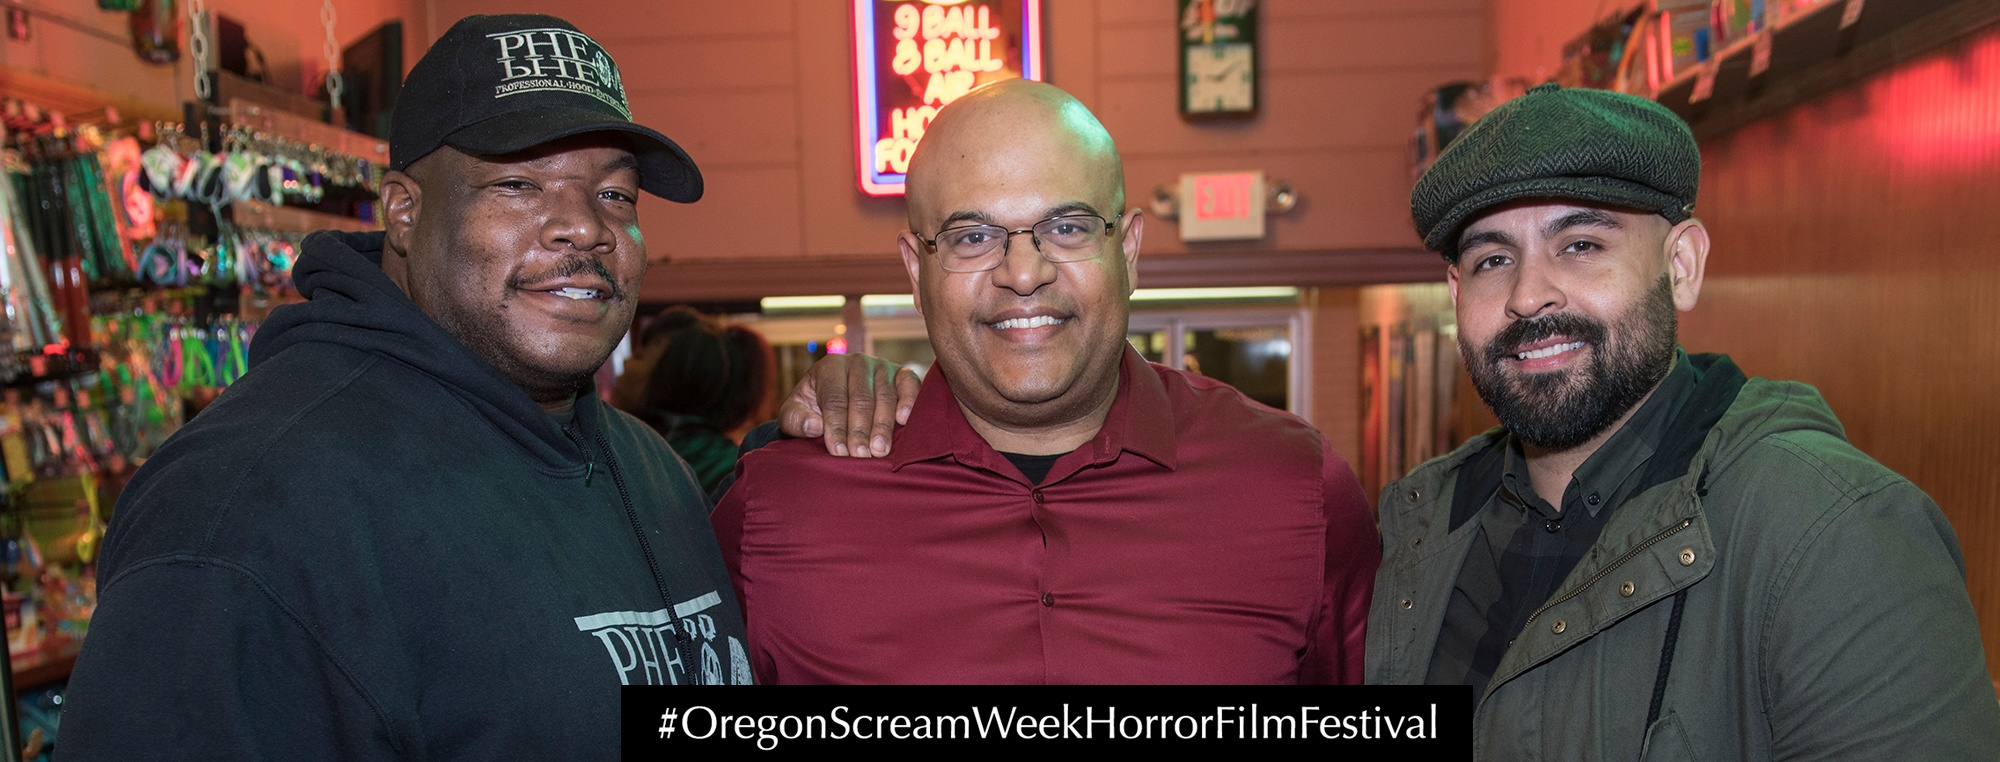 Oregon-Scream-Week-2018F-Event-Photos-033-Director-Blake-Vaz-Brian-Bostic